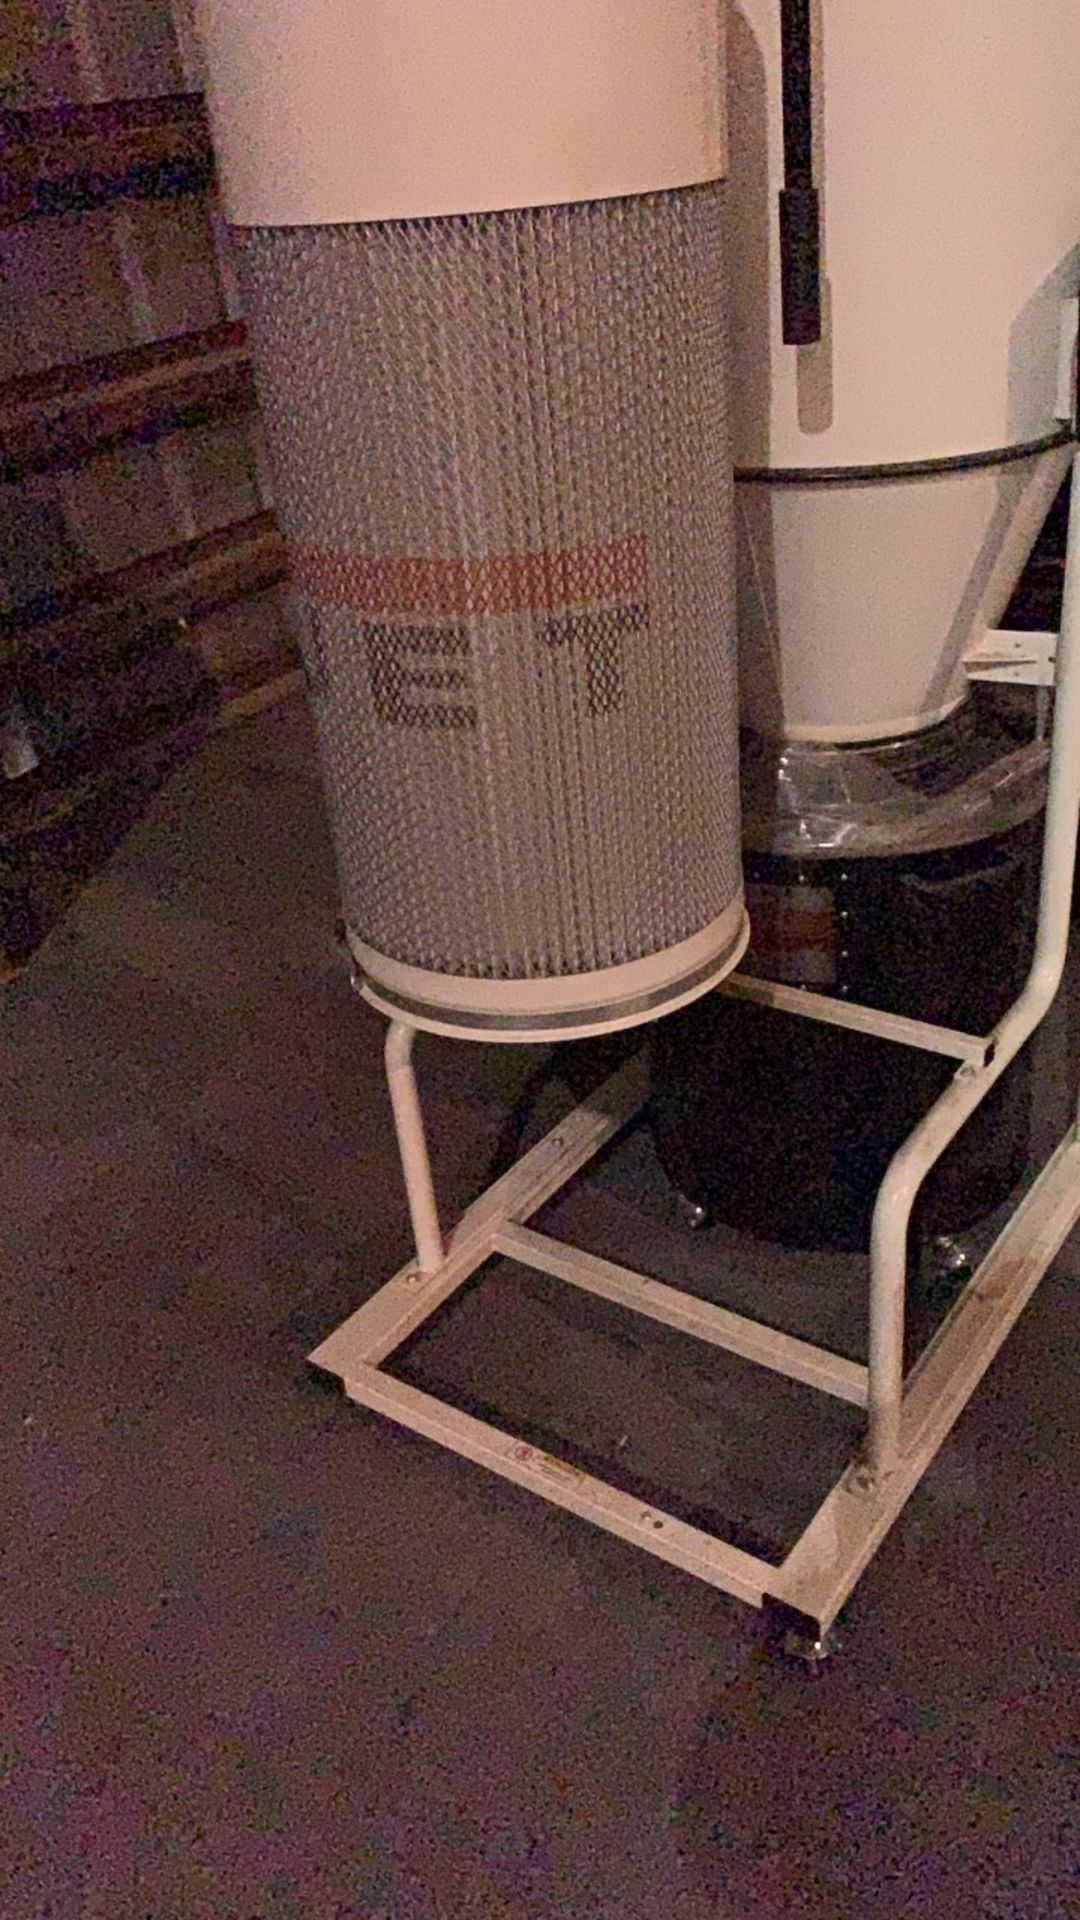 Used Granville Hemp Flower Extractor Includes: Hemp Flower Extractor w/ Vacuum & Conveying System - Image 12 of 17